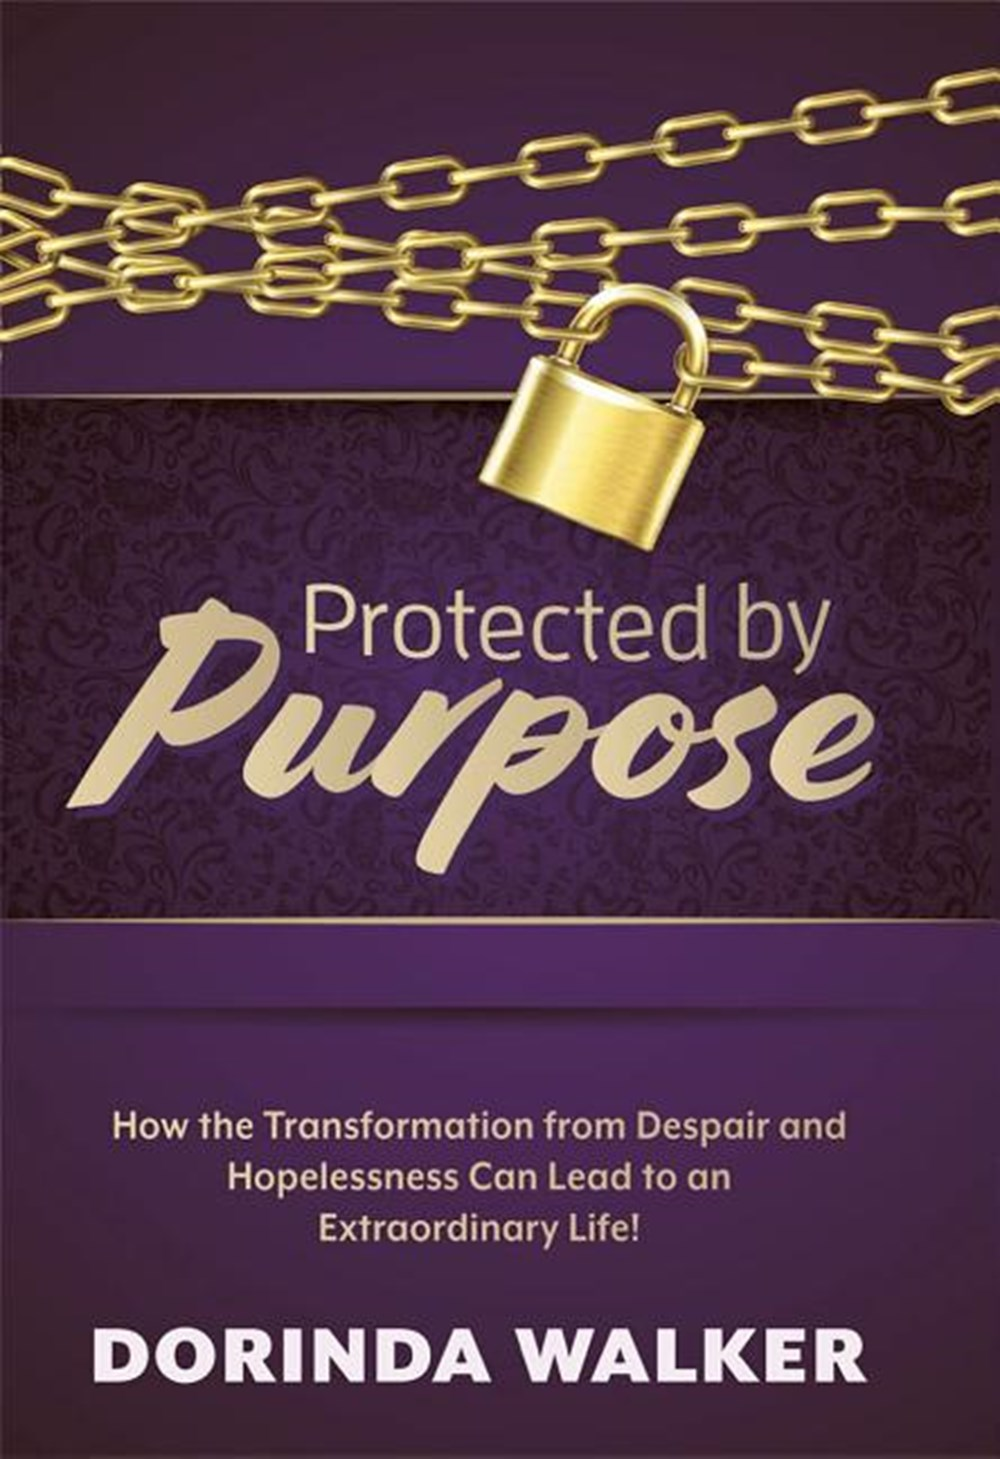 Protected by Purpose How the Transformation from Hopelessness and Despair Can Lead to an Extraordina